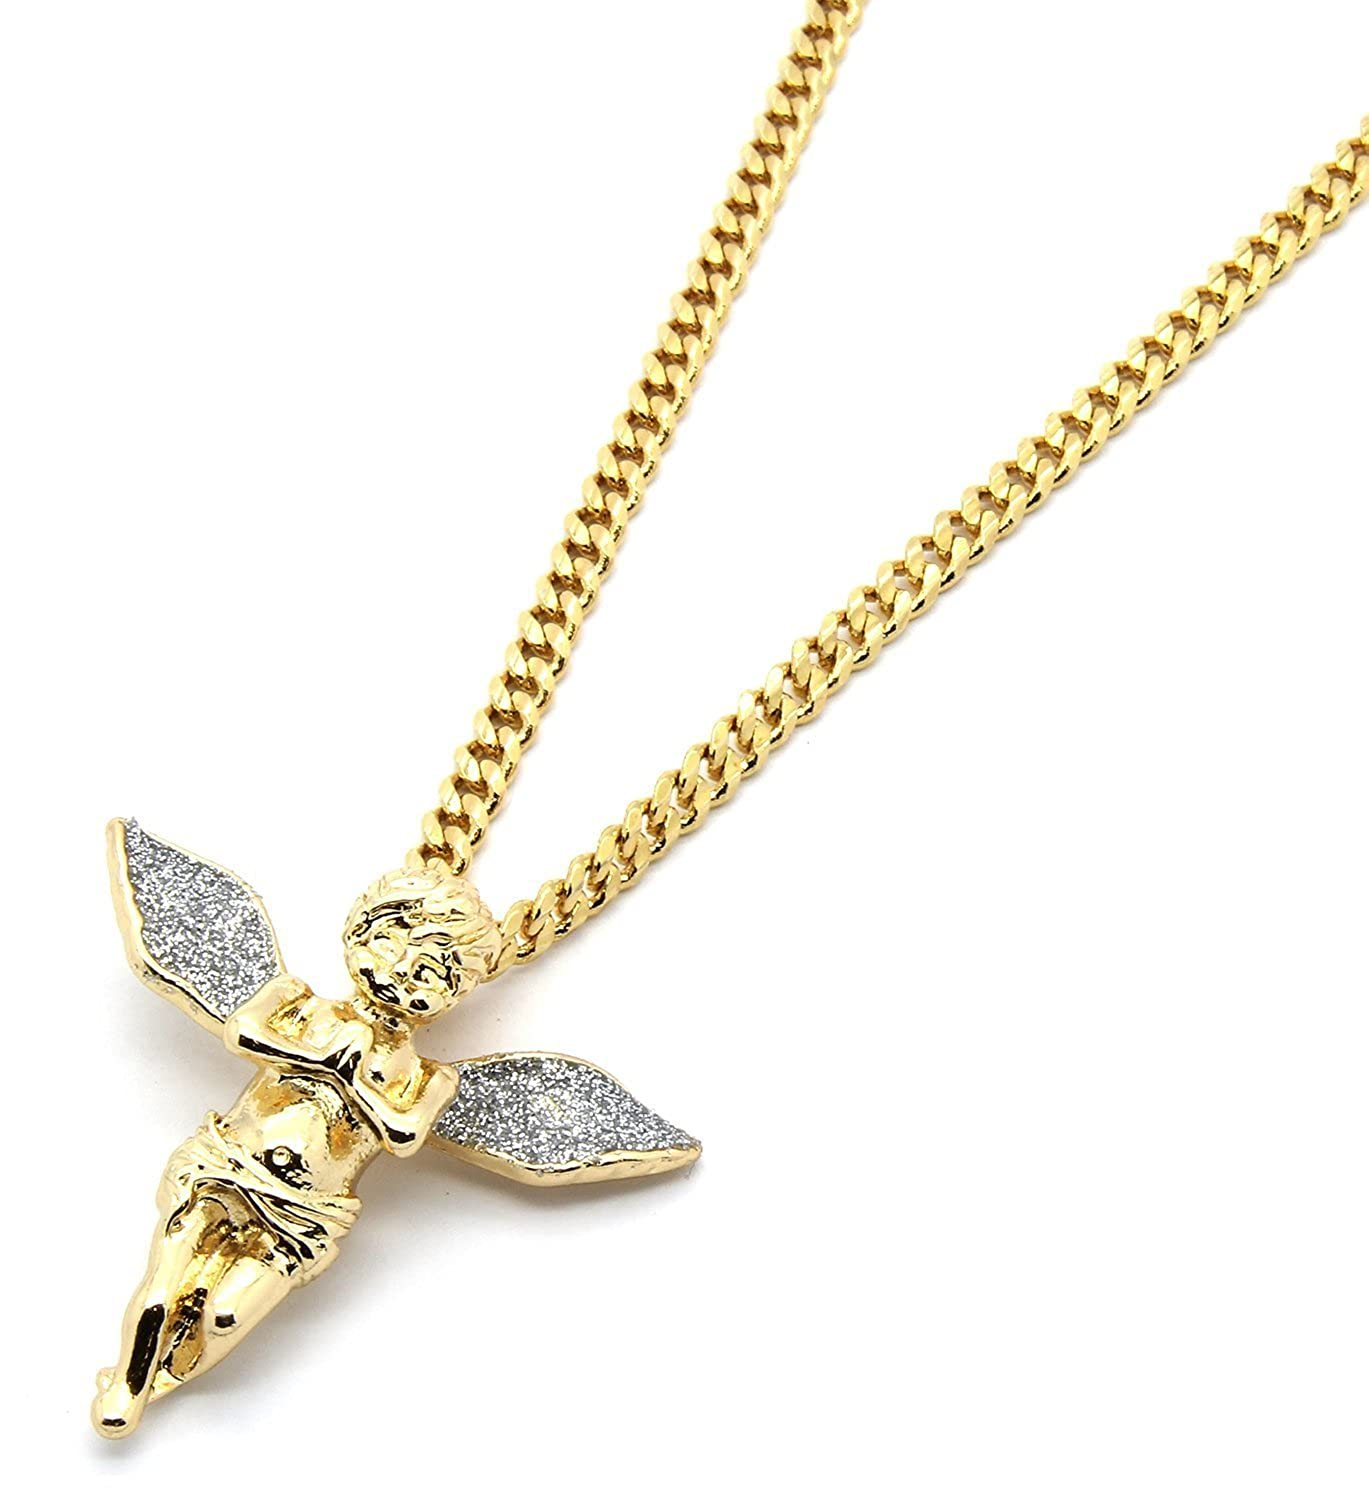 Gold tone silver stardust long wings angel pendant hip hop with 3mm gold tone silver stardust long wings angel pendant hip hop with 3mm 30 cuban chain amazon aloadofball